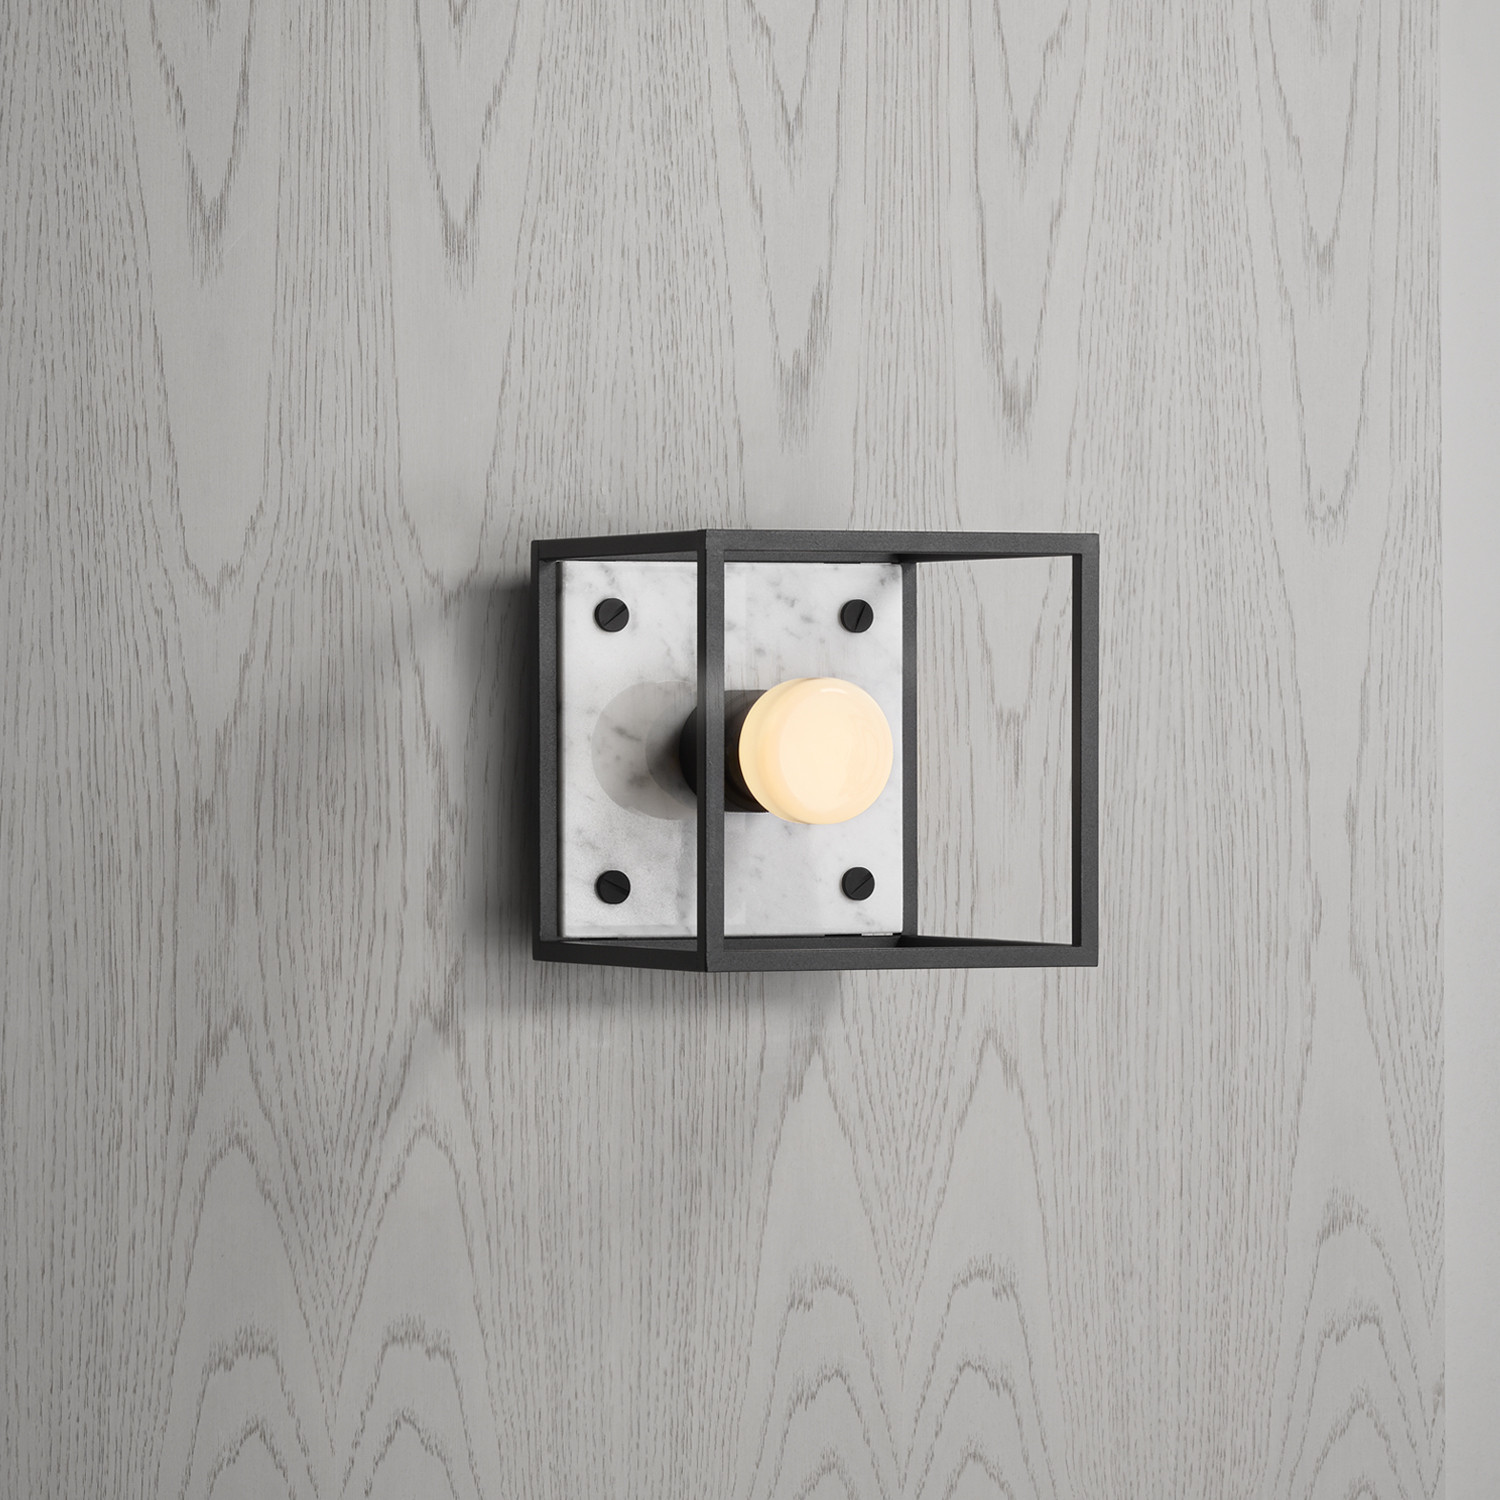 Buster + Punch / CAGED wall light made from solid metal and marble stone